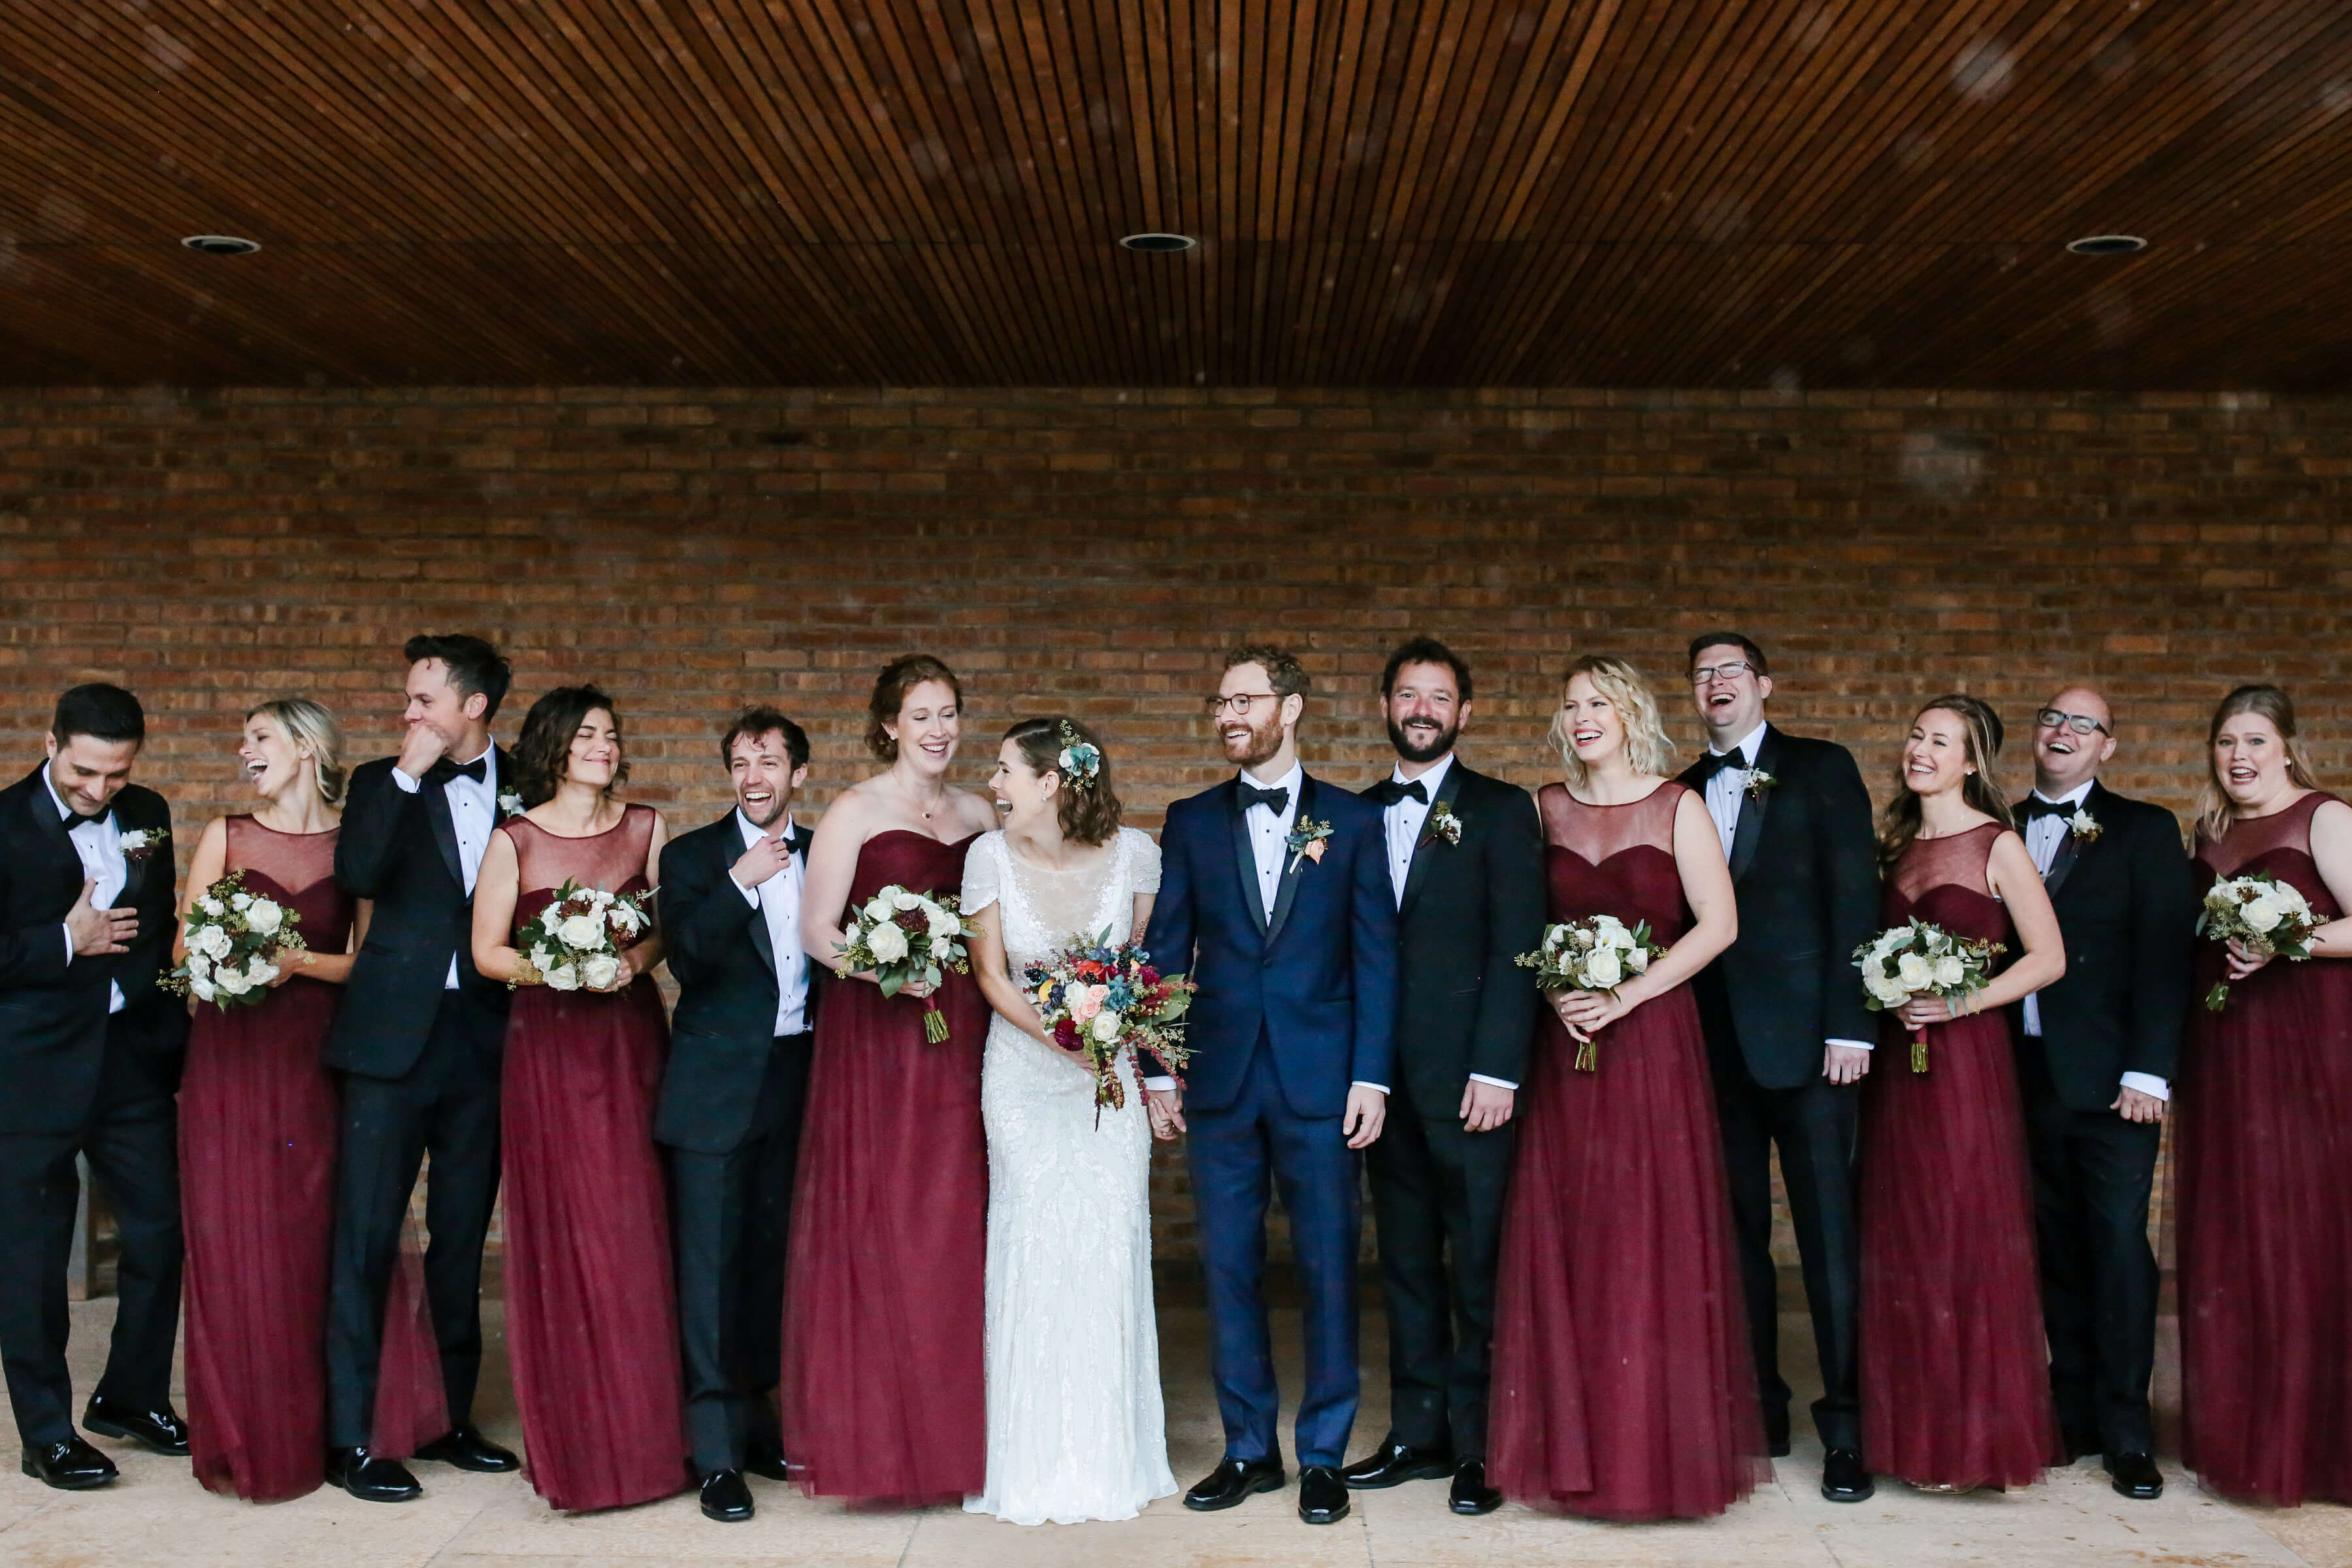 Burgundy-Bridesmaid-Dresses-Navy-Suits